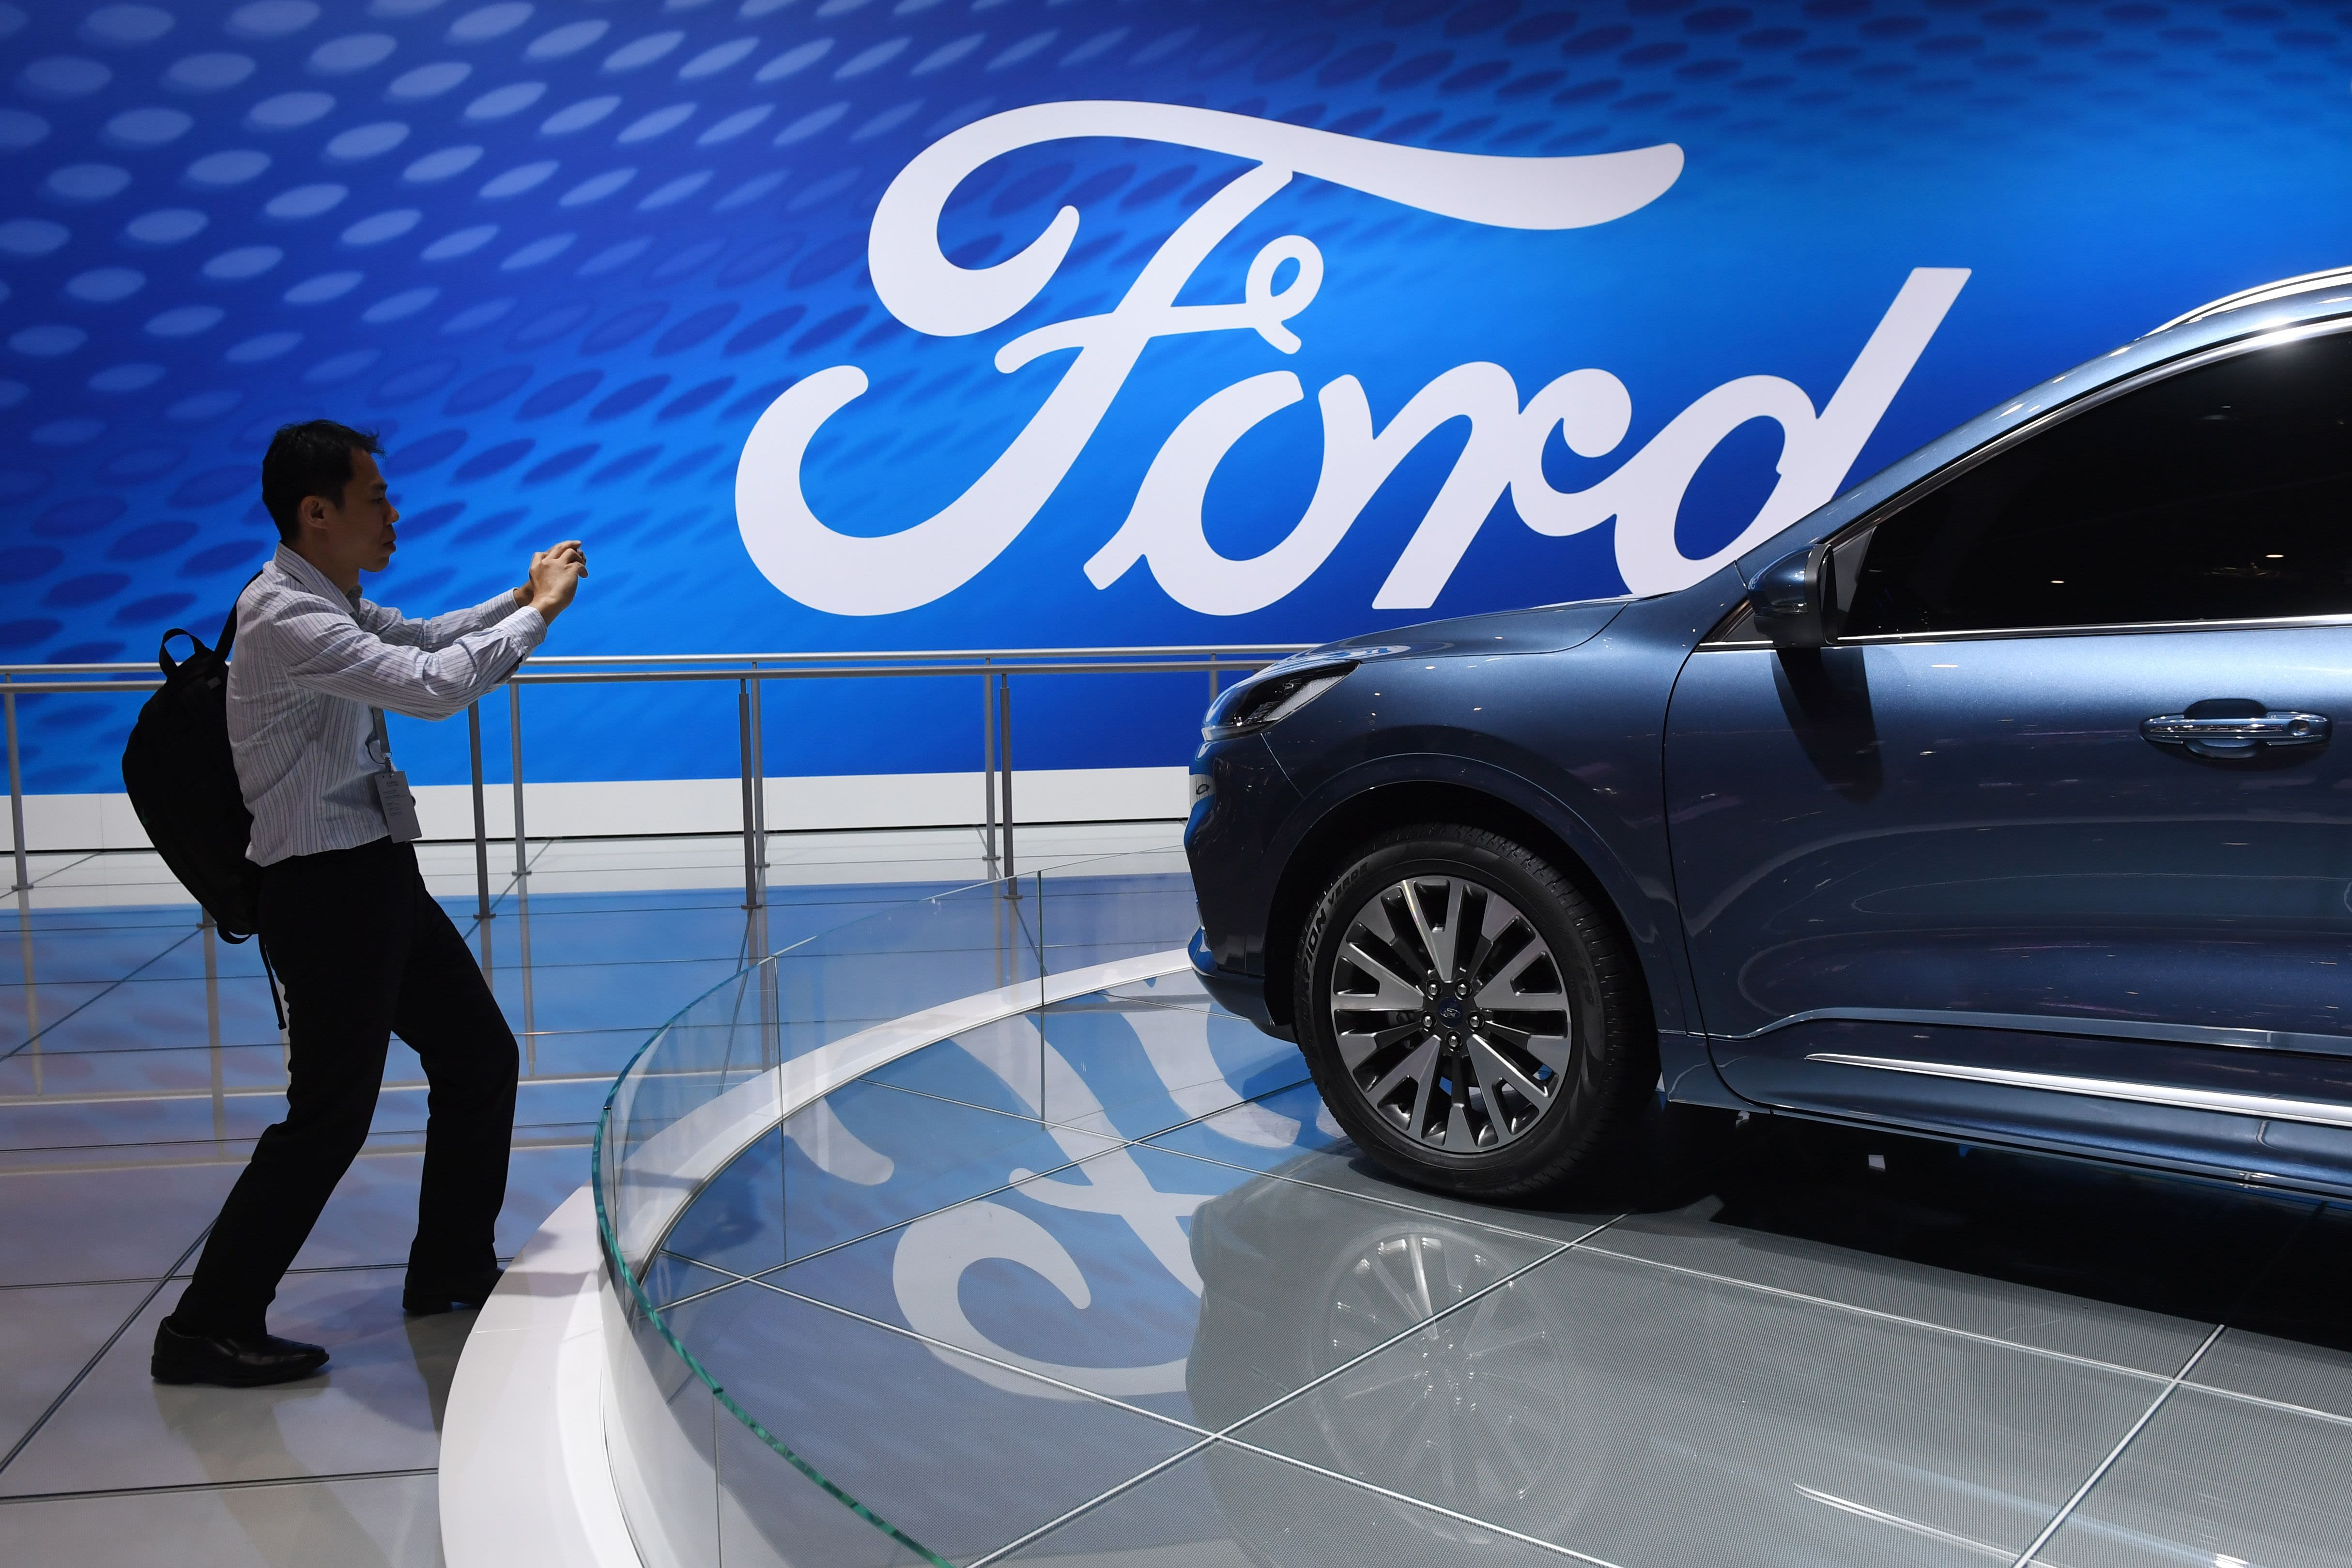 Ford, Honeywell can withstand Uber's onslaught on auto sector